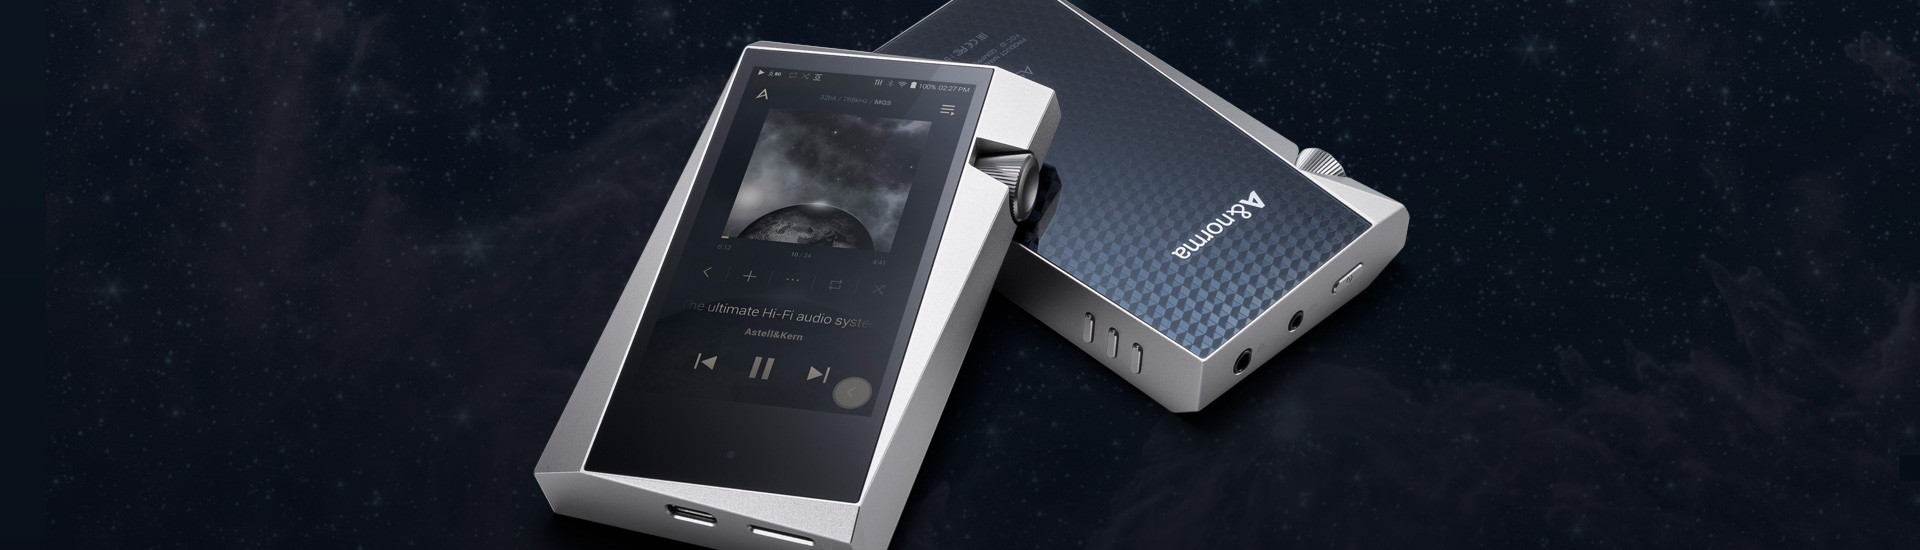 Review: Astell & Kern SR25 Portable Music Player